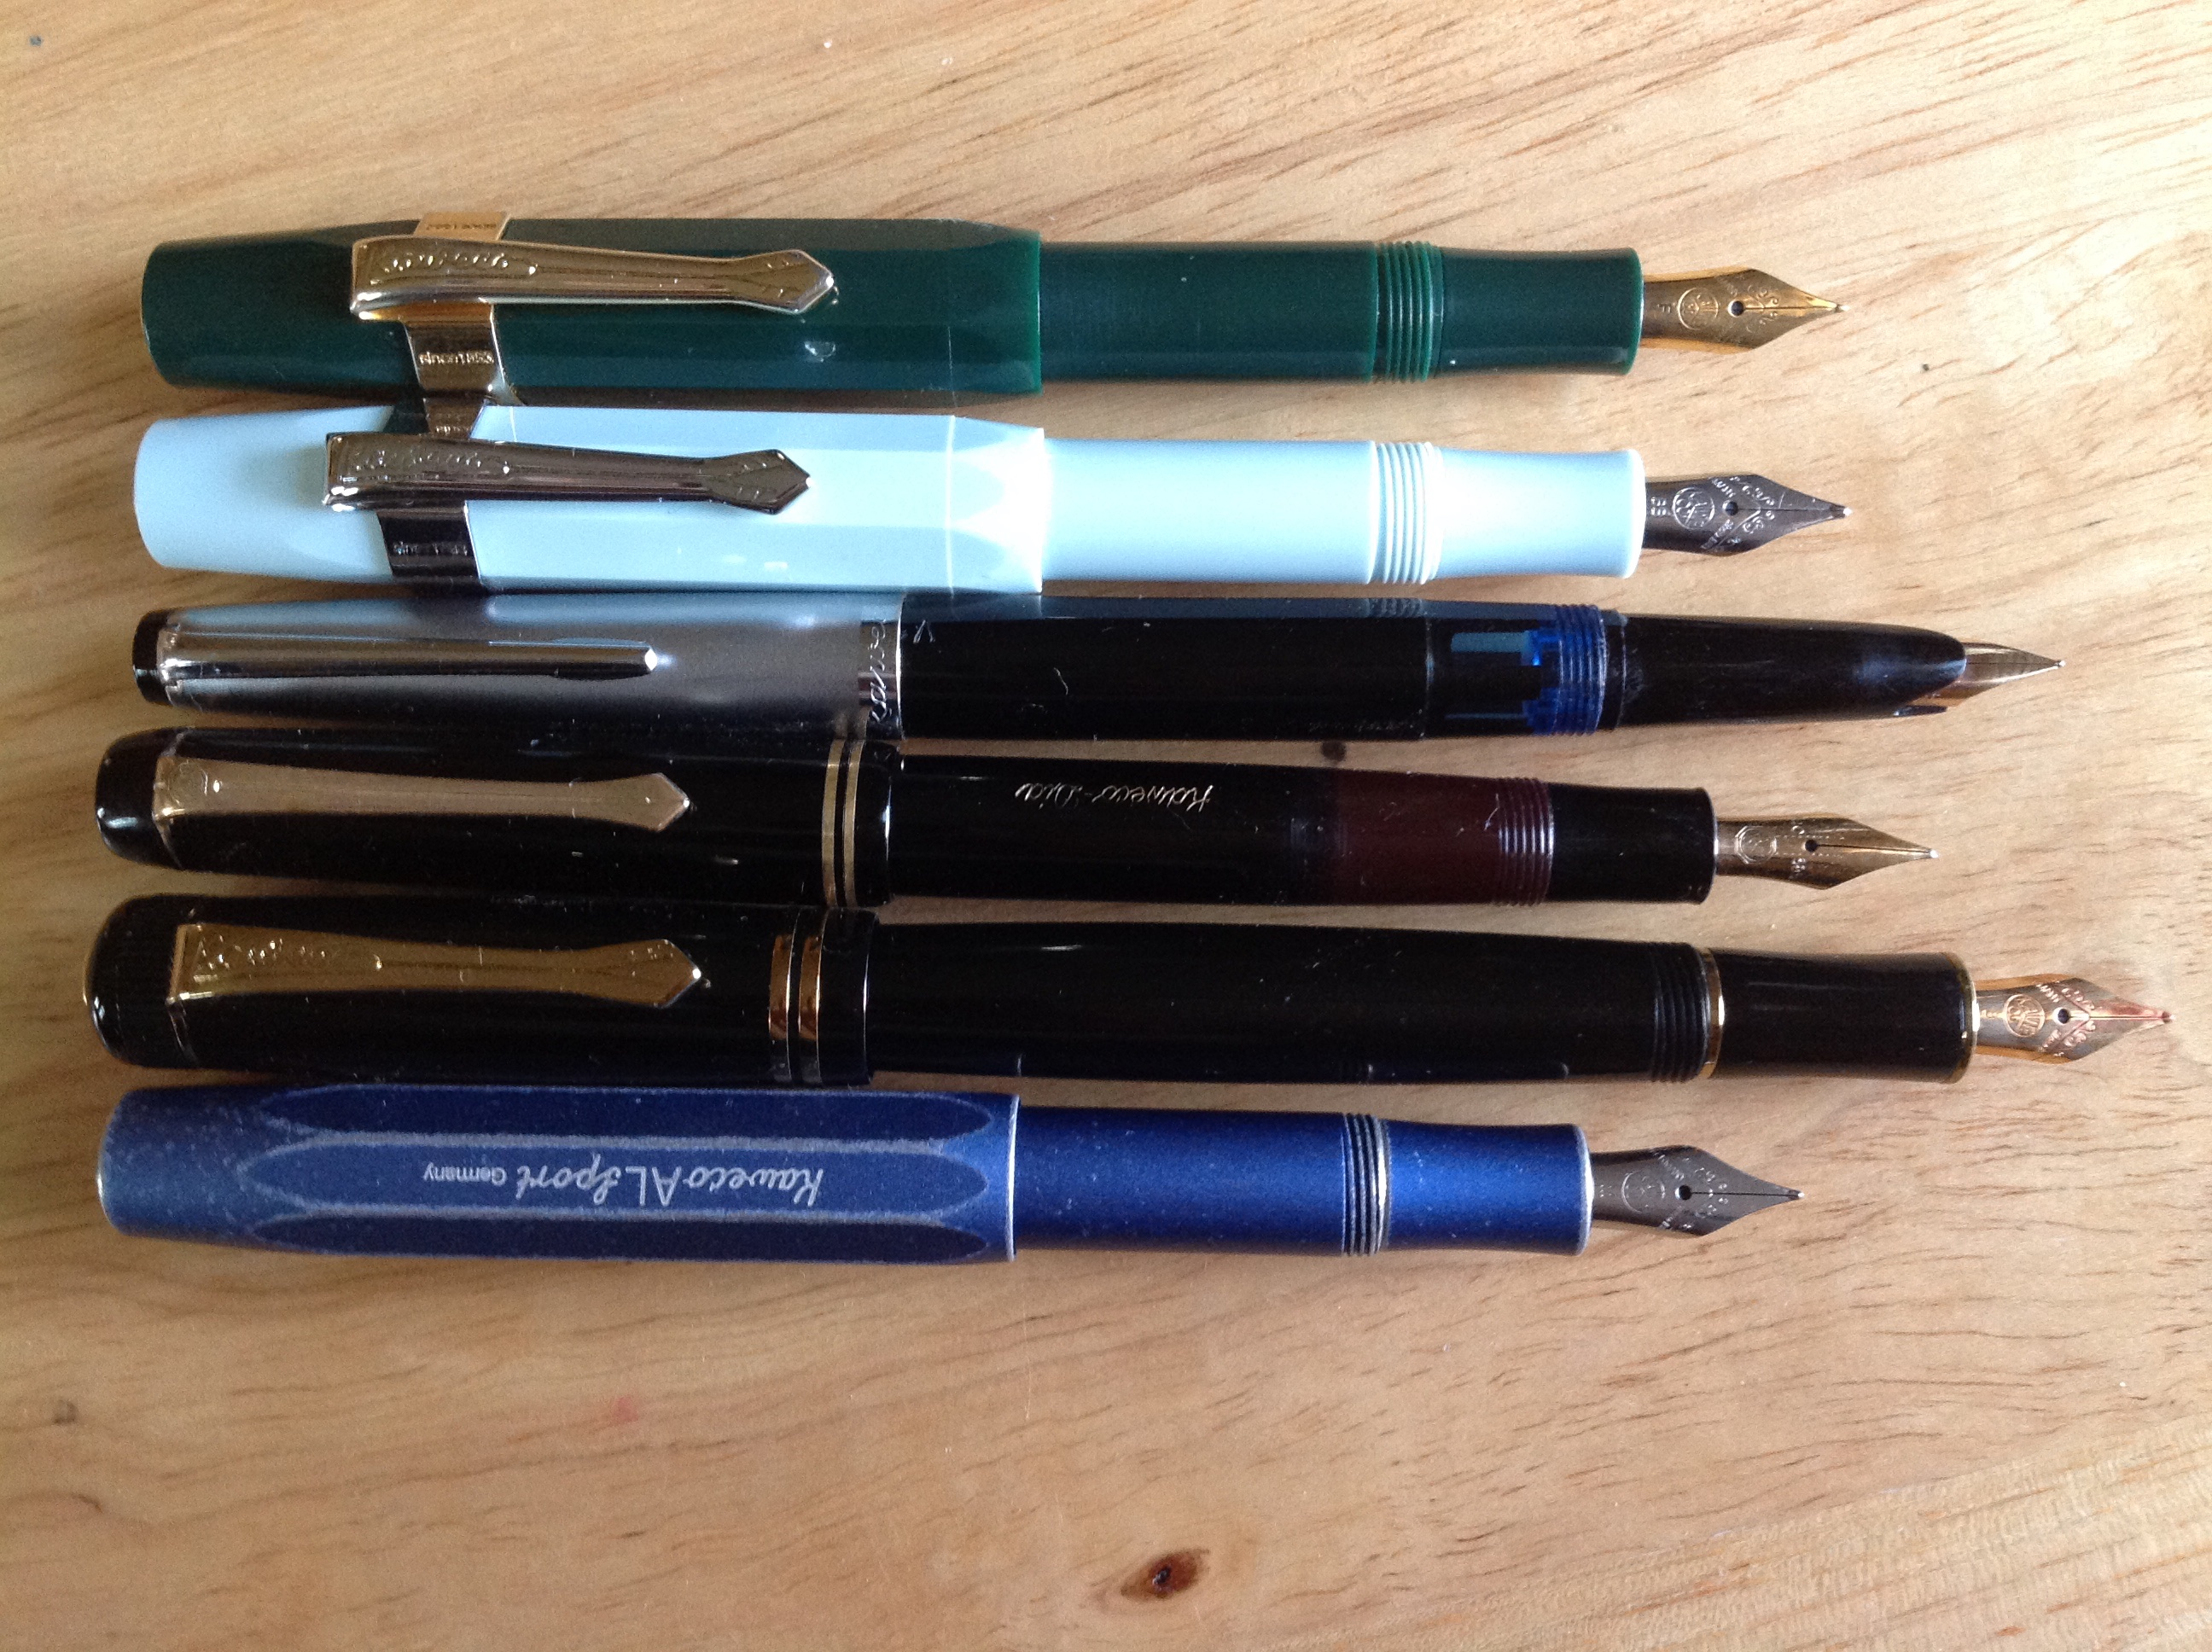 fpn_1470270873__kaweco_collection.jpg